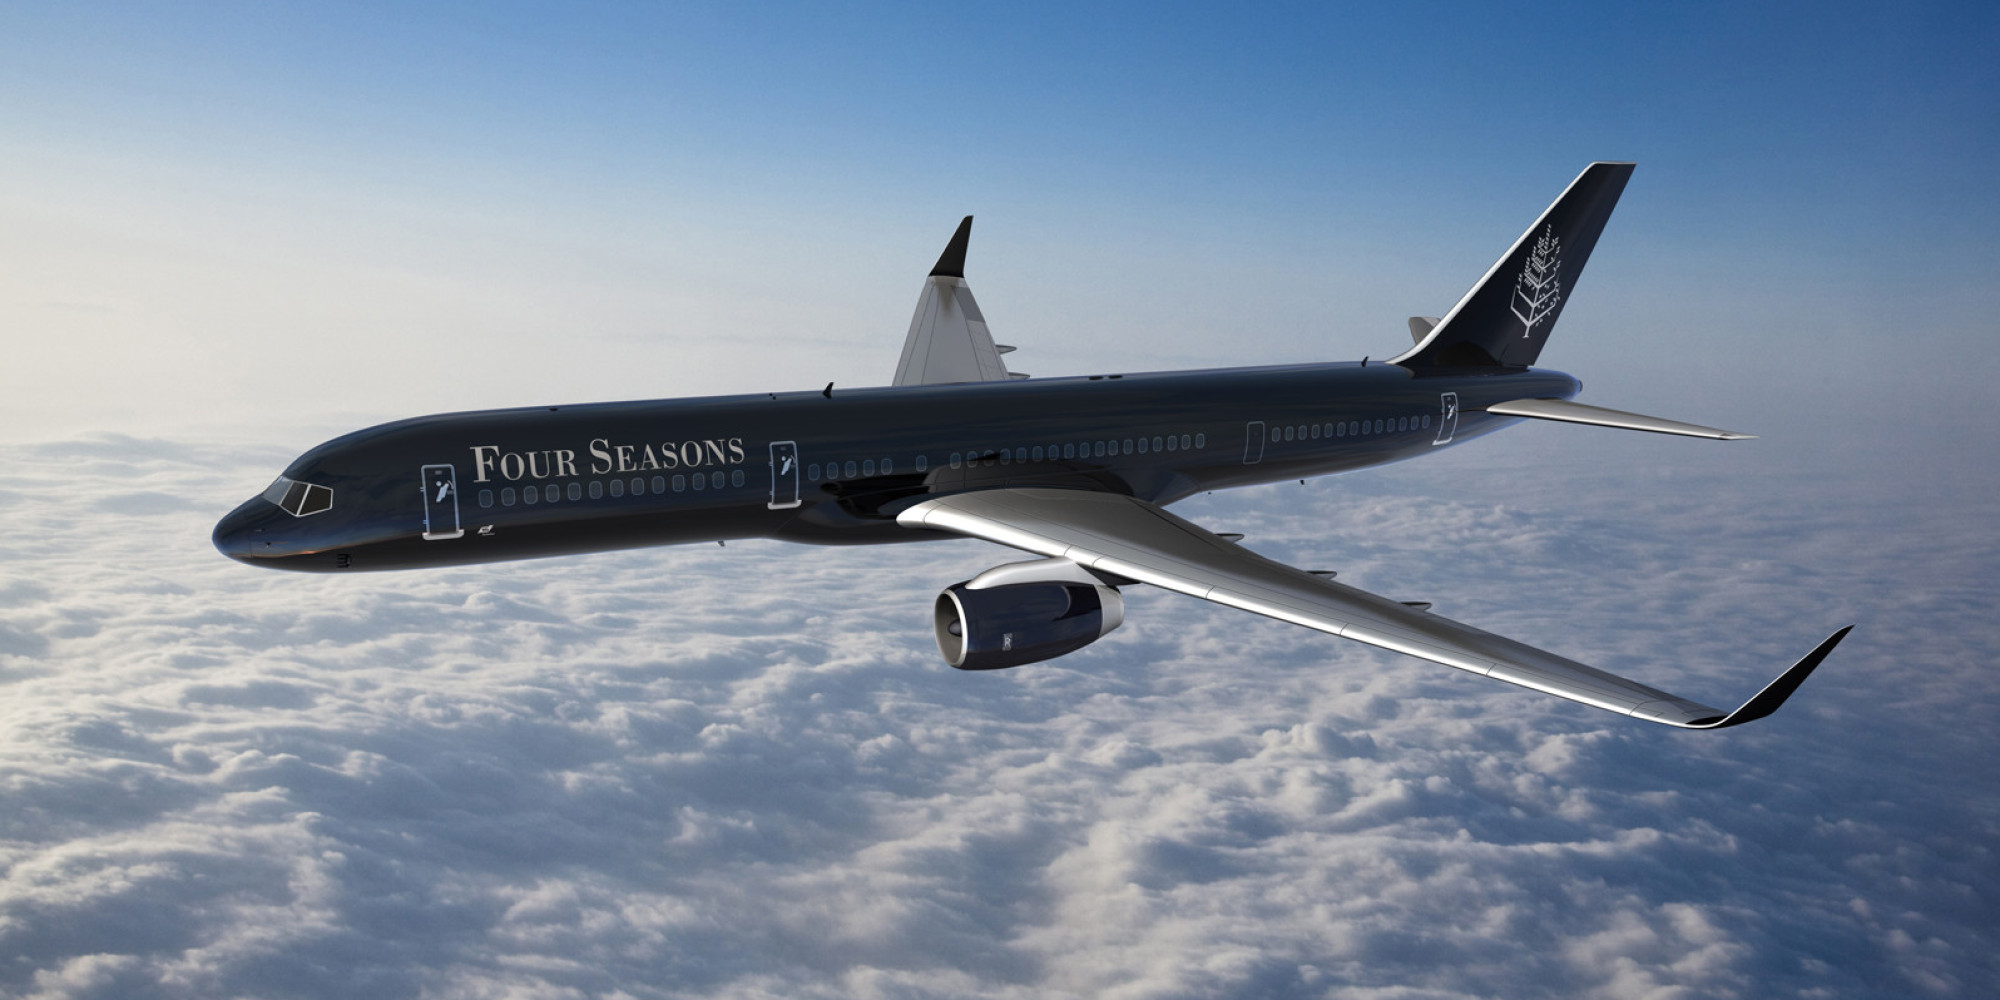 Four Seasons Launches Private Jet For World Tours Because